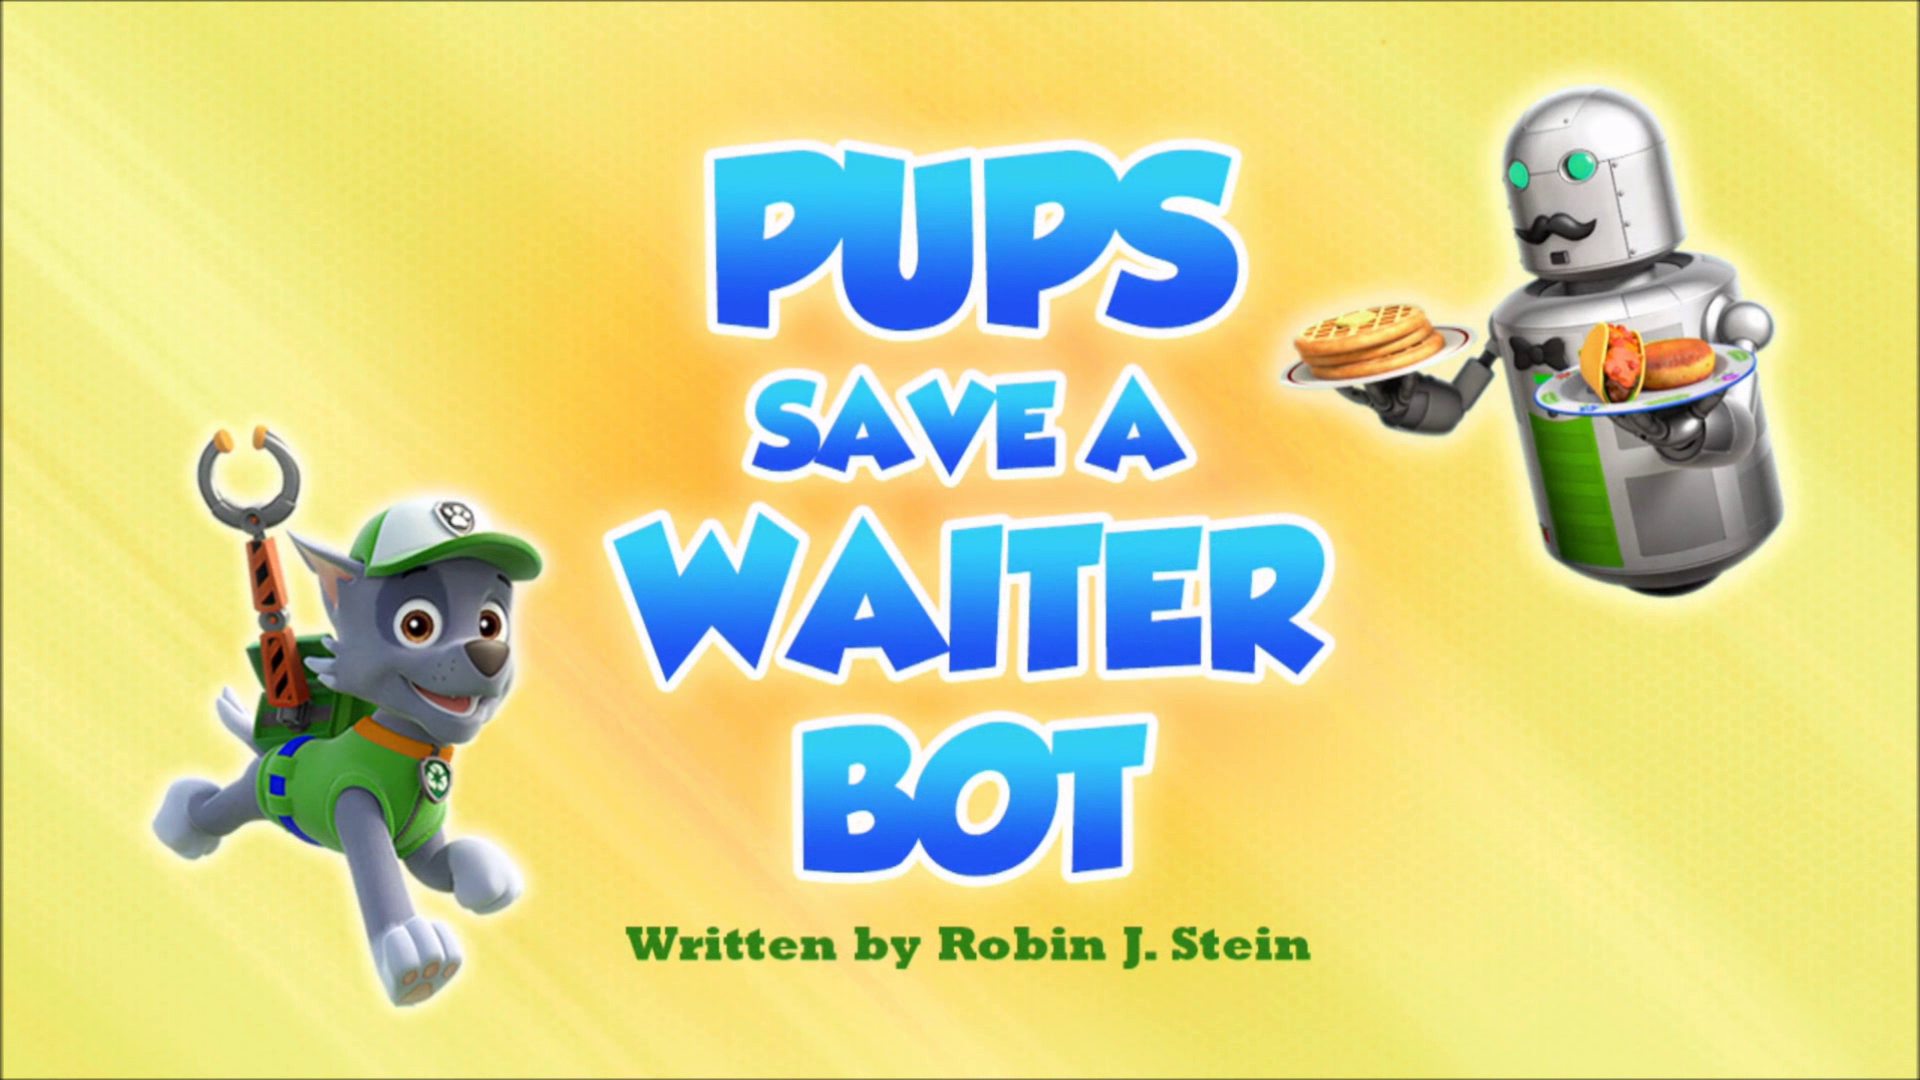 Pups Save a Waiter Bot